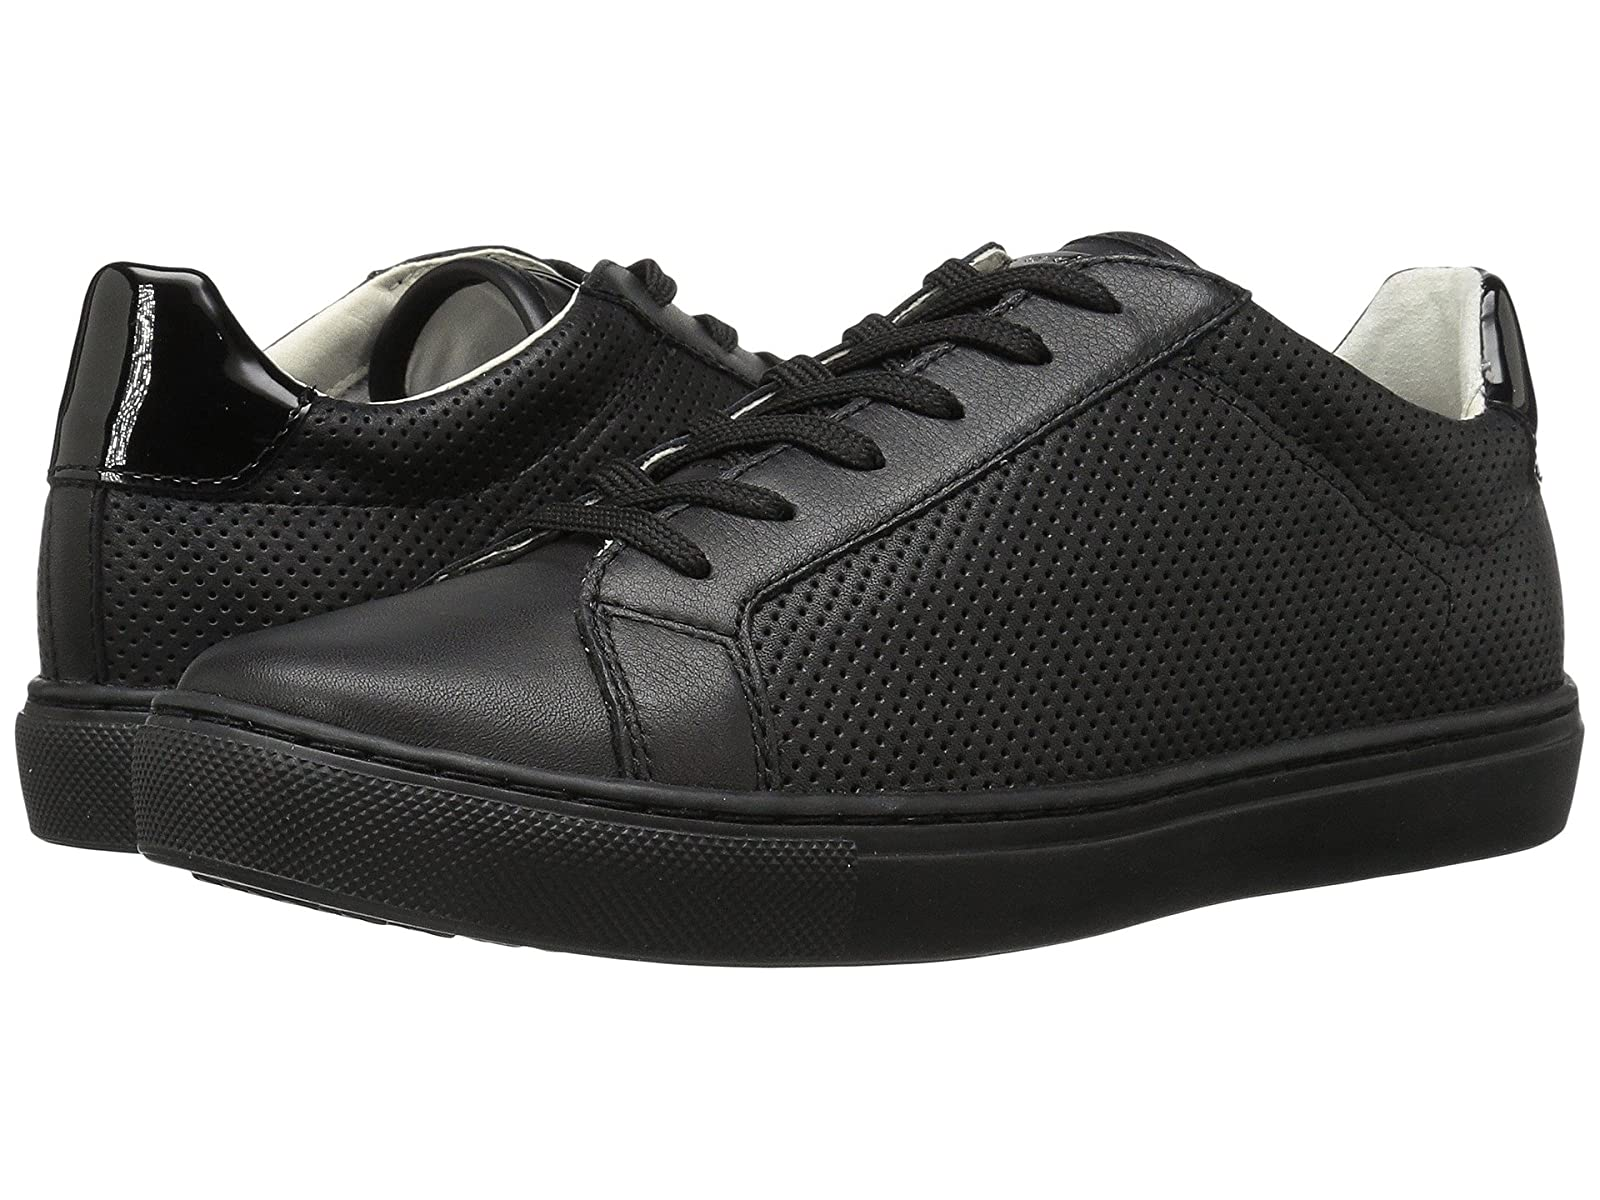 Geox W TRYSURE 2Cheap and distinctive eye-catching shoes